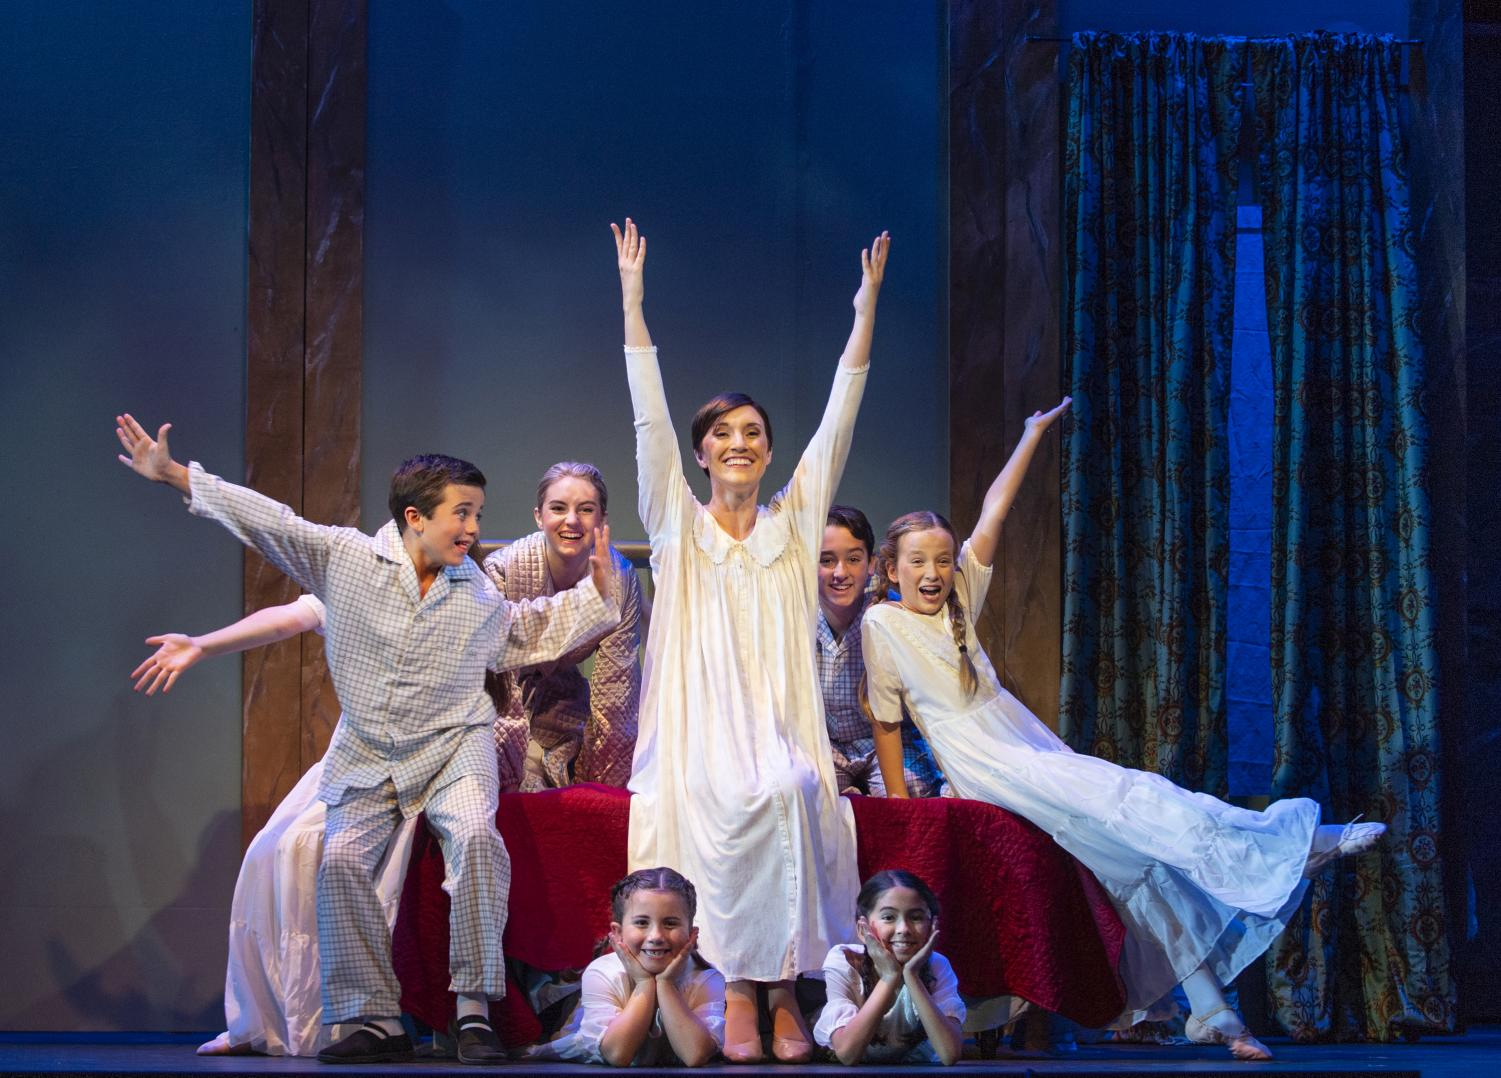 Maria (center – Jillian Bader) and the von Trapp children (clockwise from left: Billy Hutton, Madison Colgate, Jake Miller, Anna Savage, Jane Quiazon, Mary Hutton) all sing together to forget their fear of the thunder.